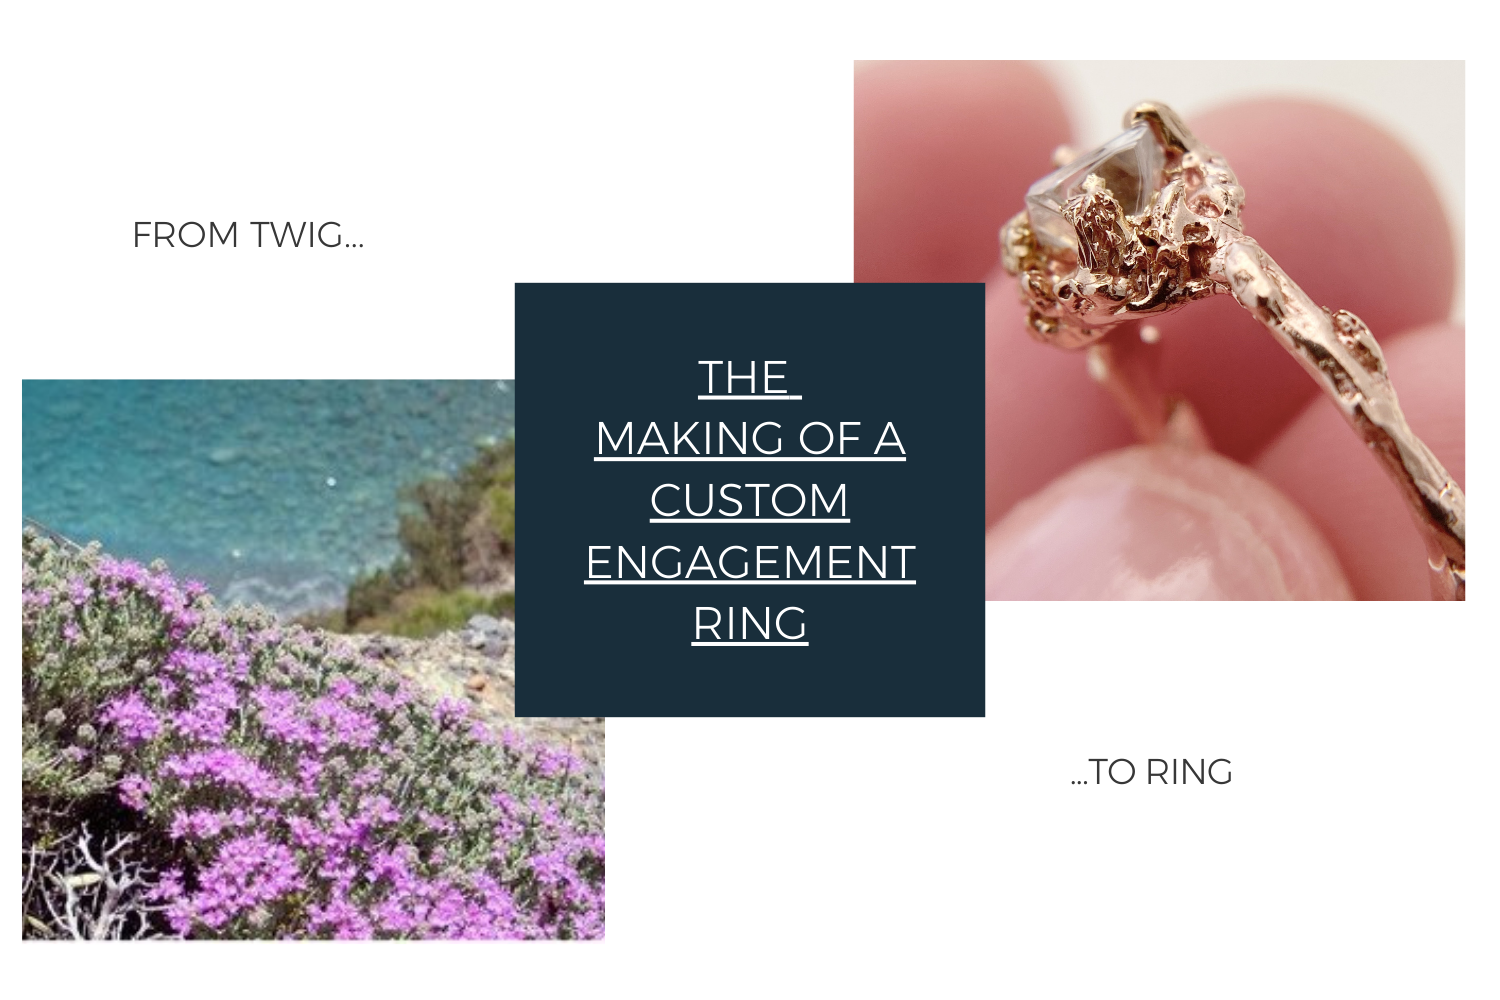 From Twig to Ring, Journey of a Custom Engagement Ring